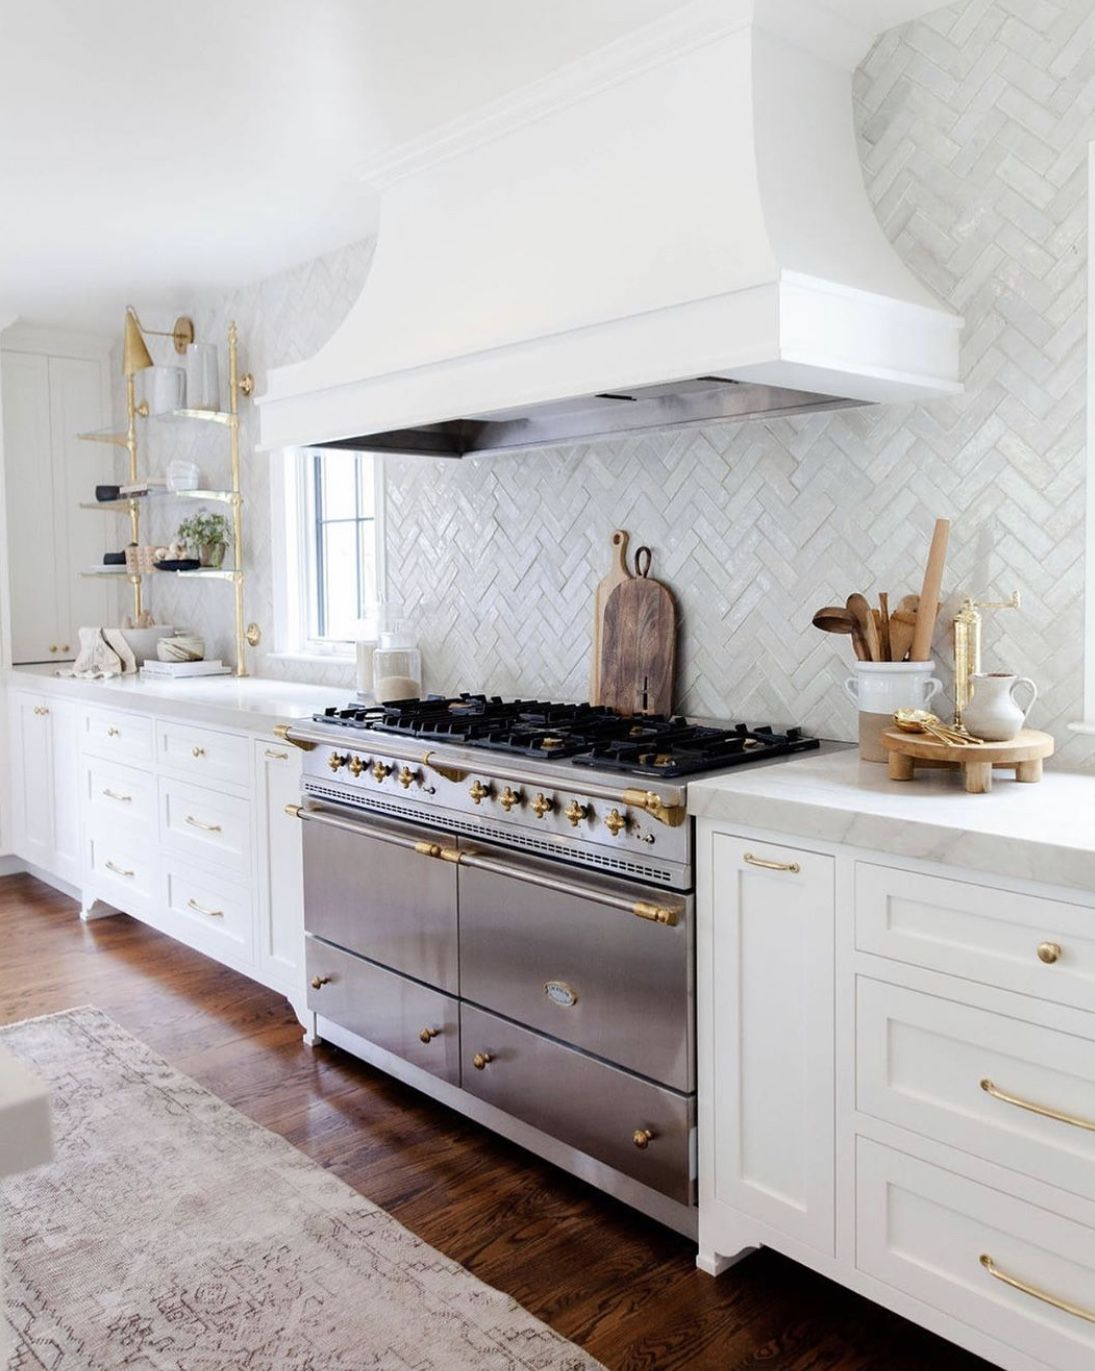 Pin by Jo Singer on Home sweet home | Traditional kitchen ...